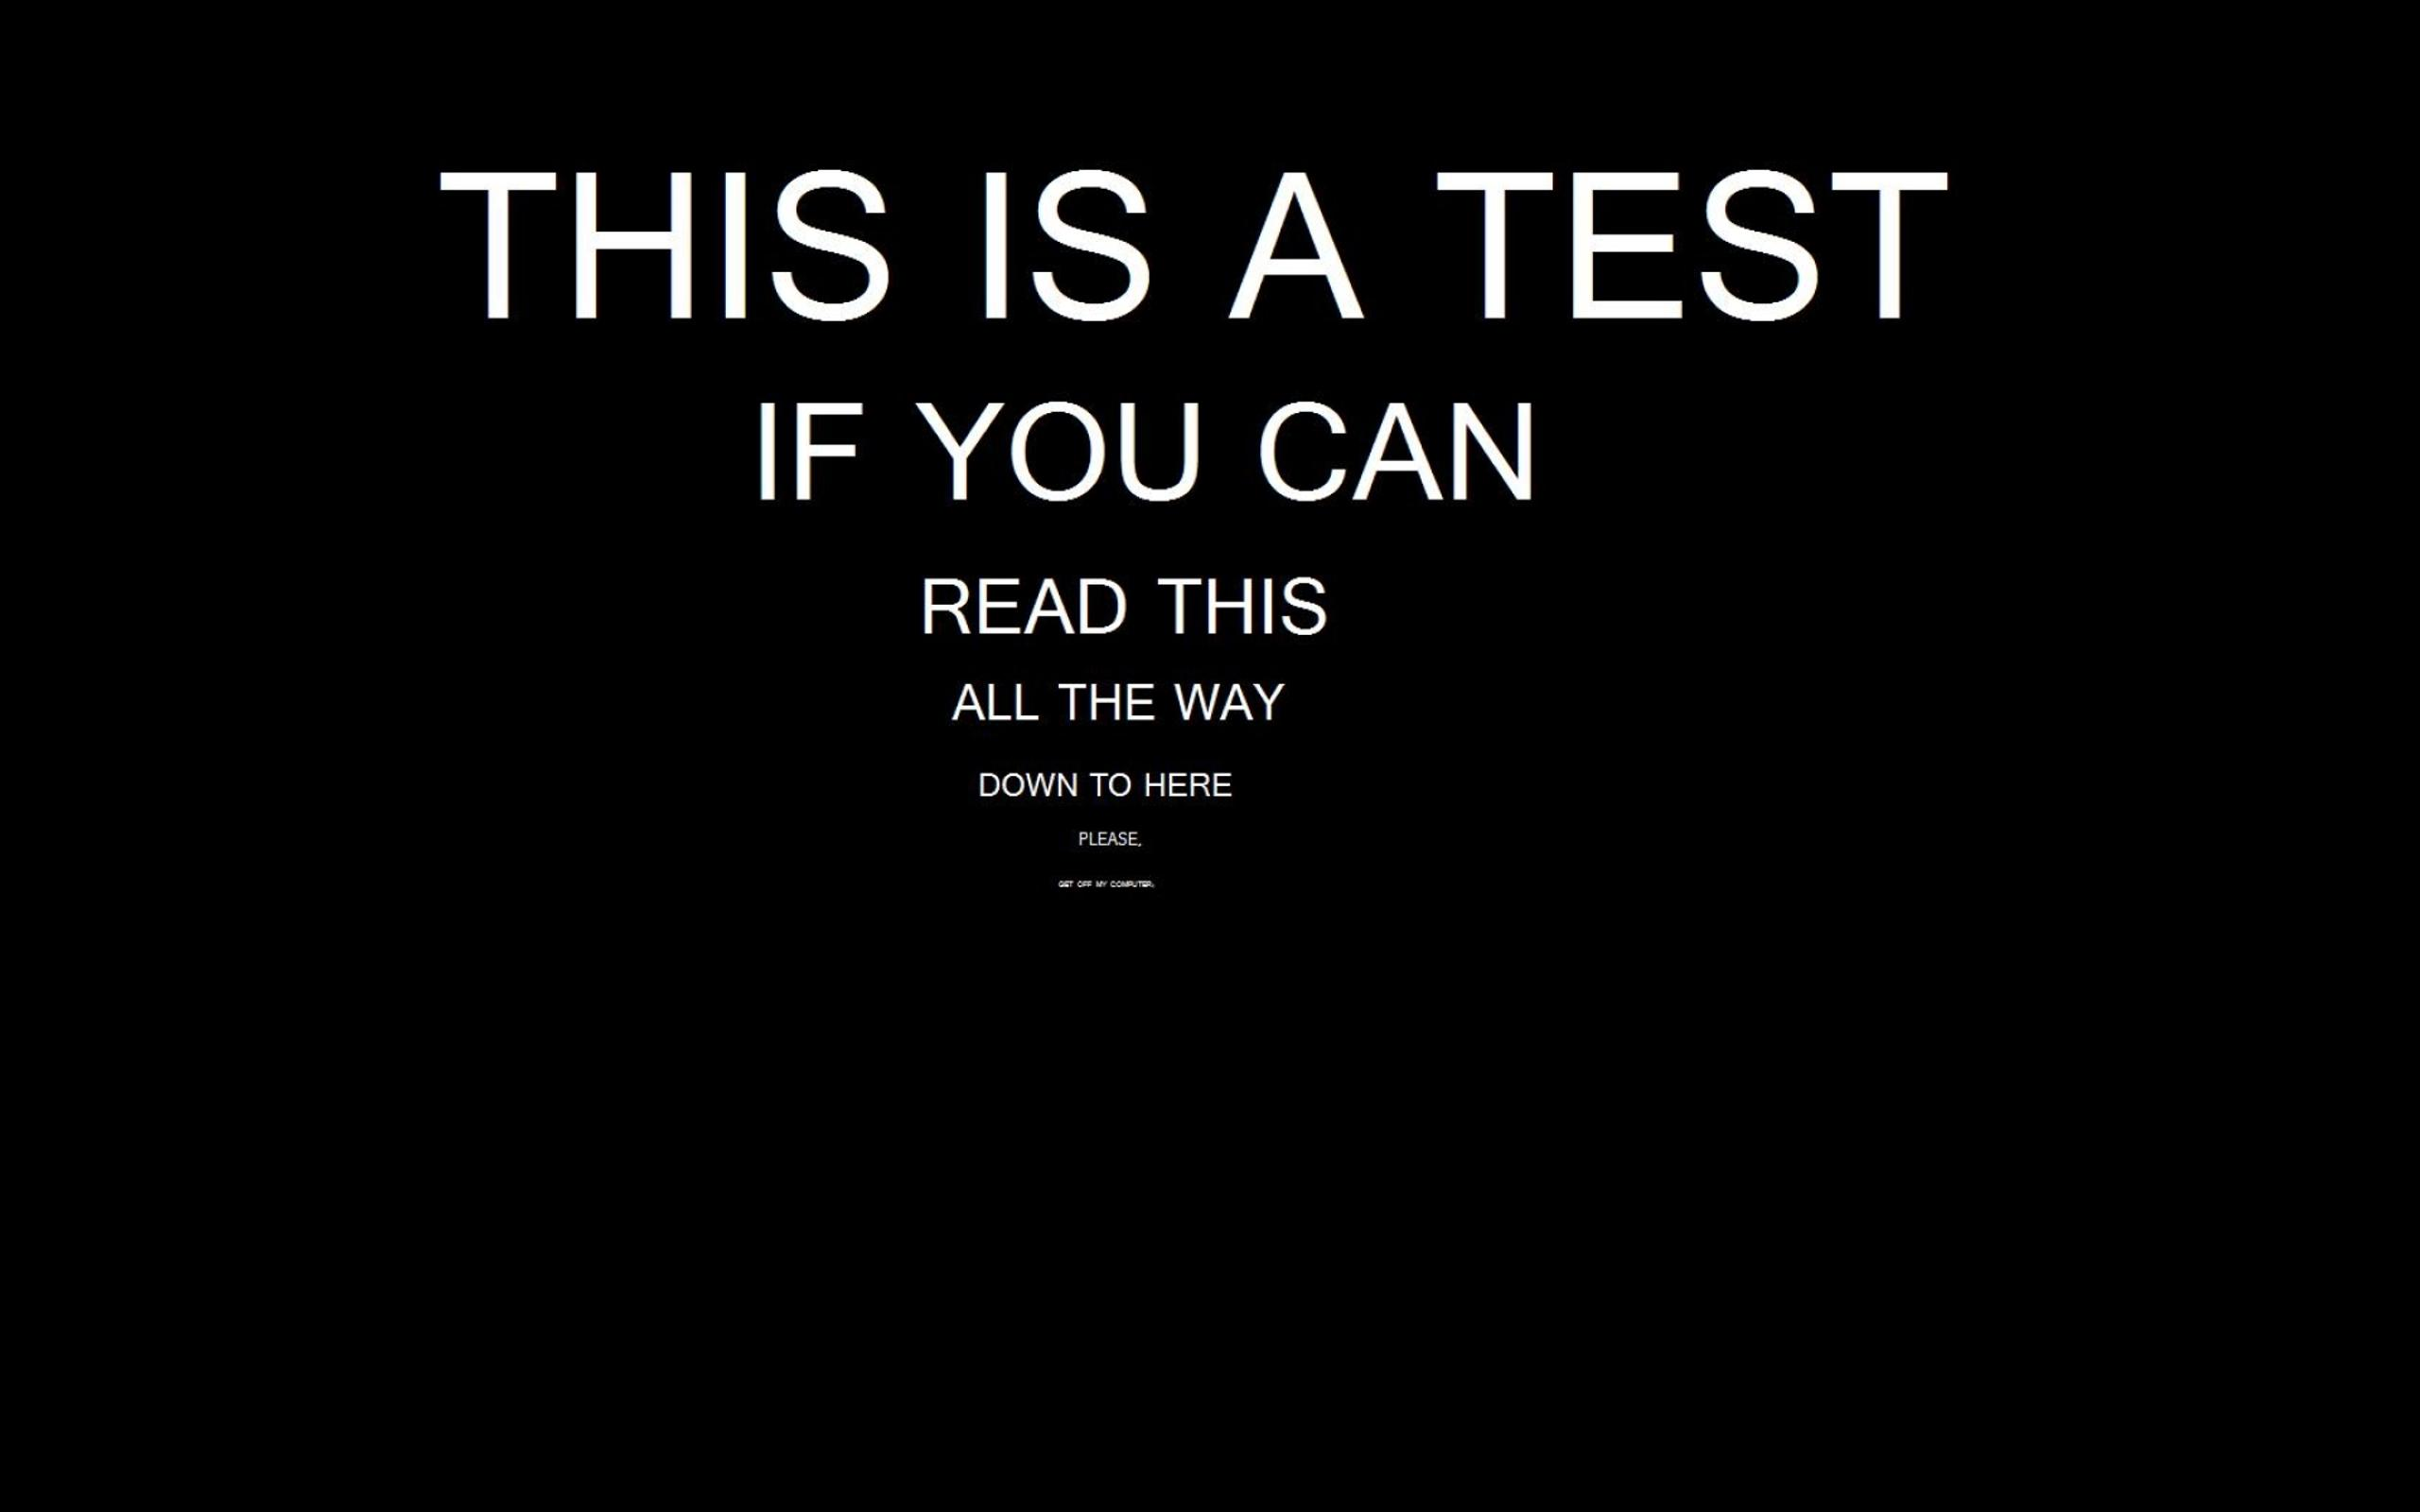 test for reading - funny hd wallpaper wallpaper download 2560x1600